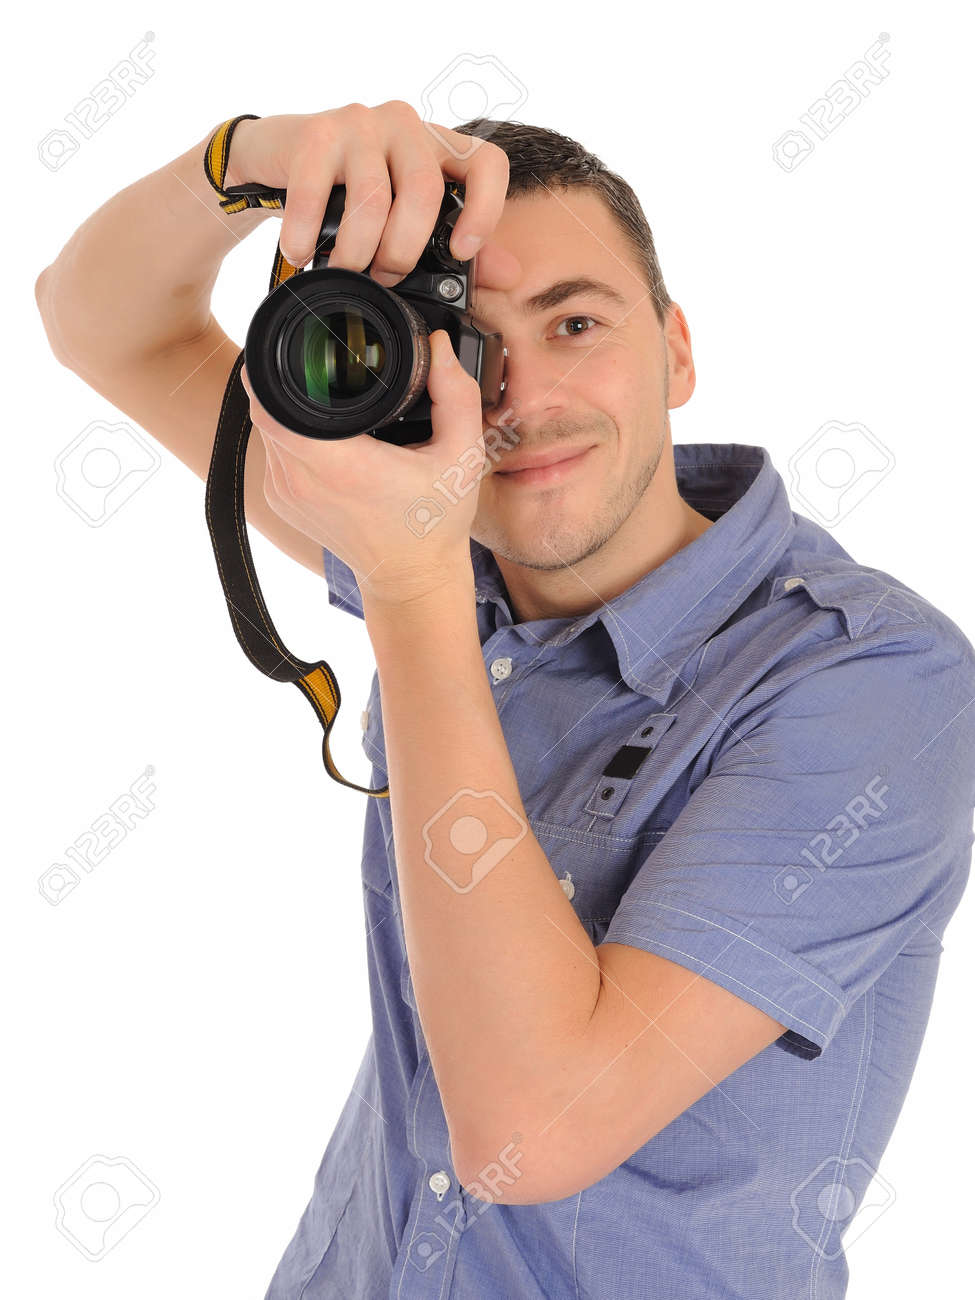 professional male photographer taking picture . isolated on white background - 8613305